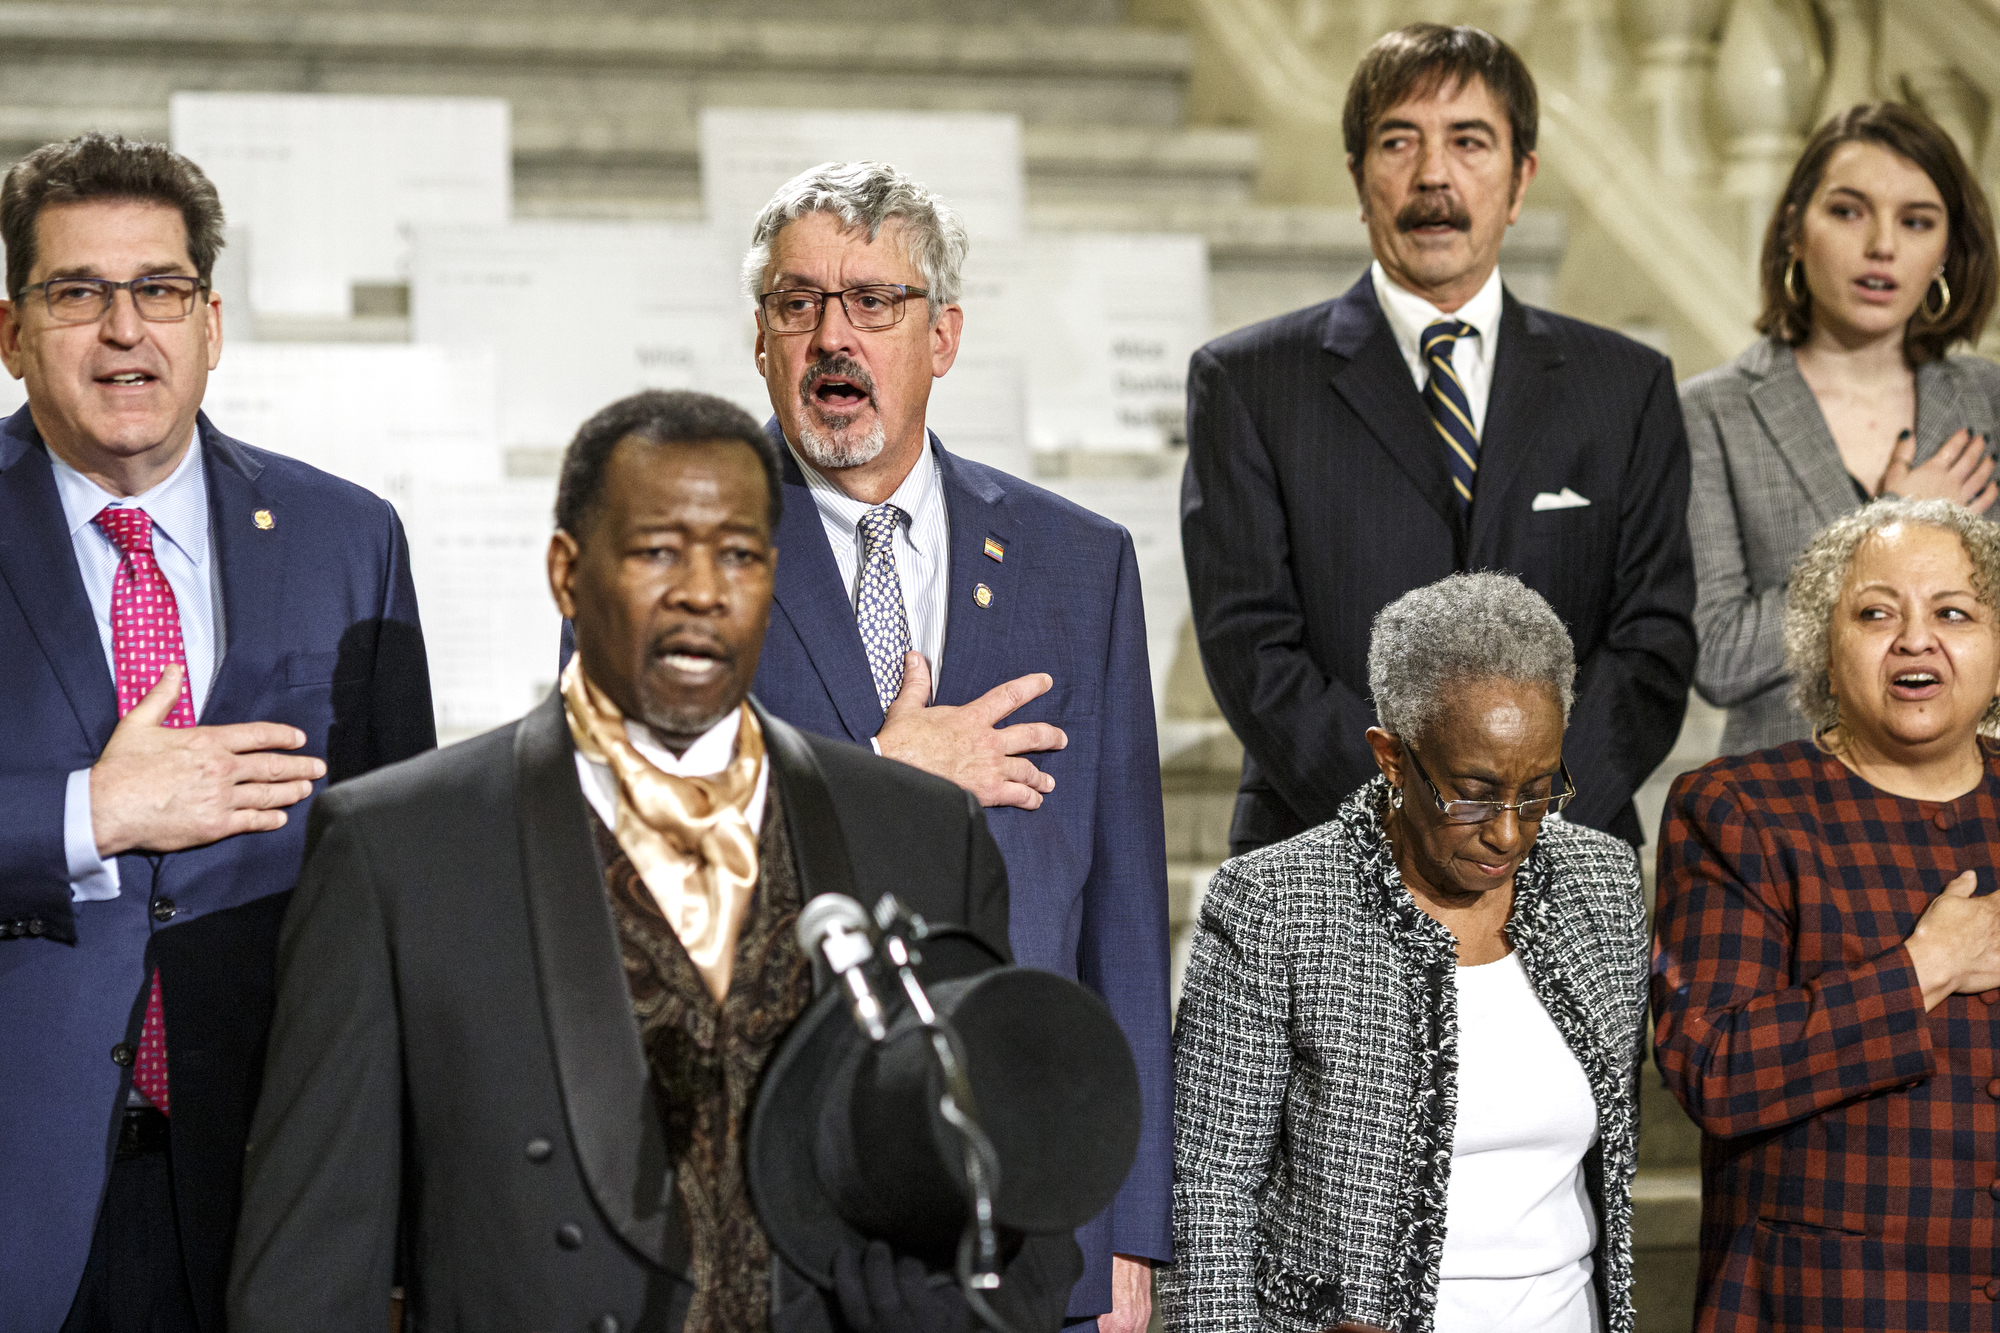 Monument planned on Pa. Capitol grounds to be nation's first to honor expansion of voting rights